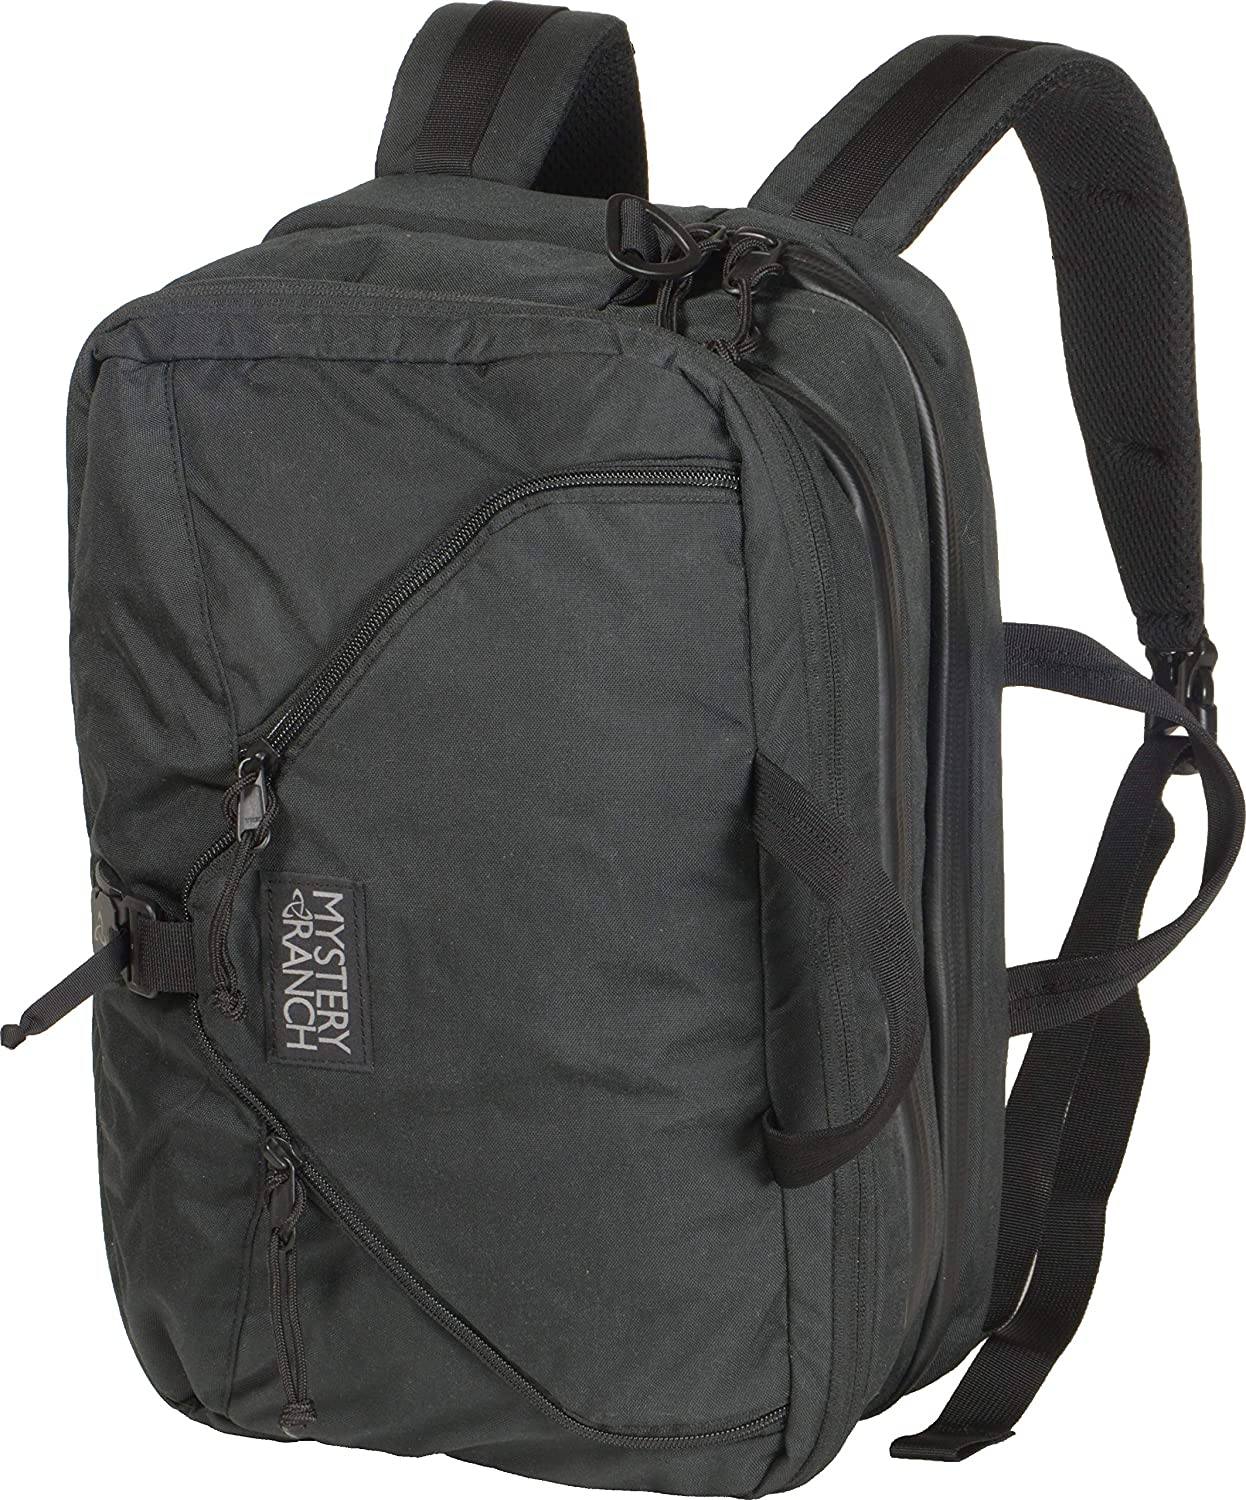 MYSTERY RANCH 3 Way Briefcase - Carry as Tote, Backpack and Shoulder Bag, Black, 22L